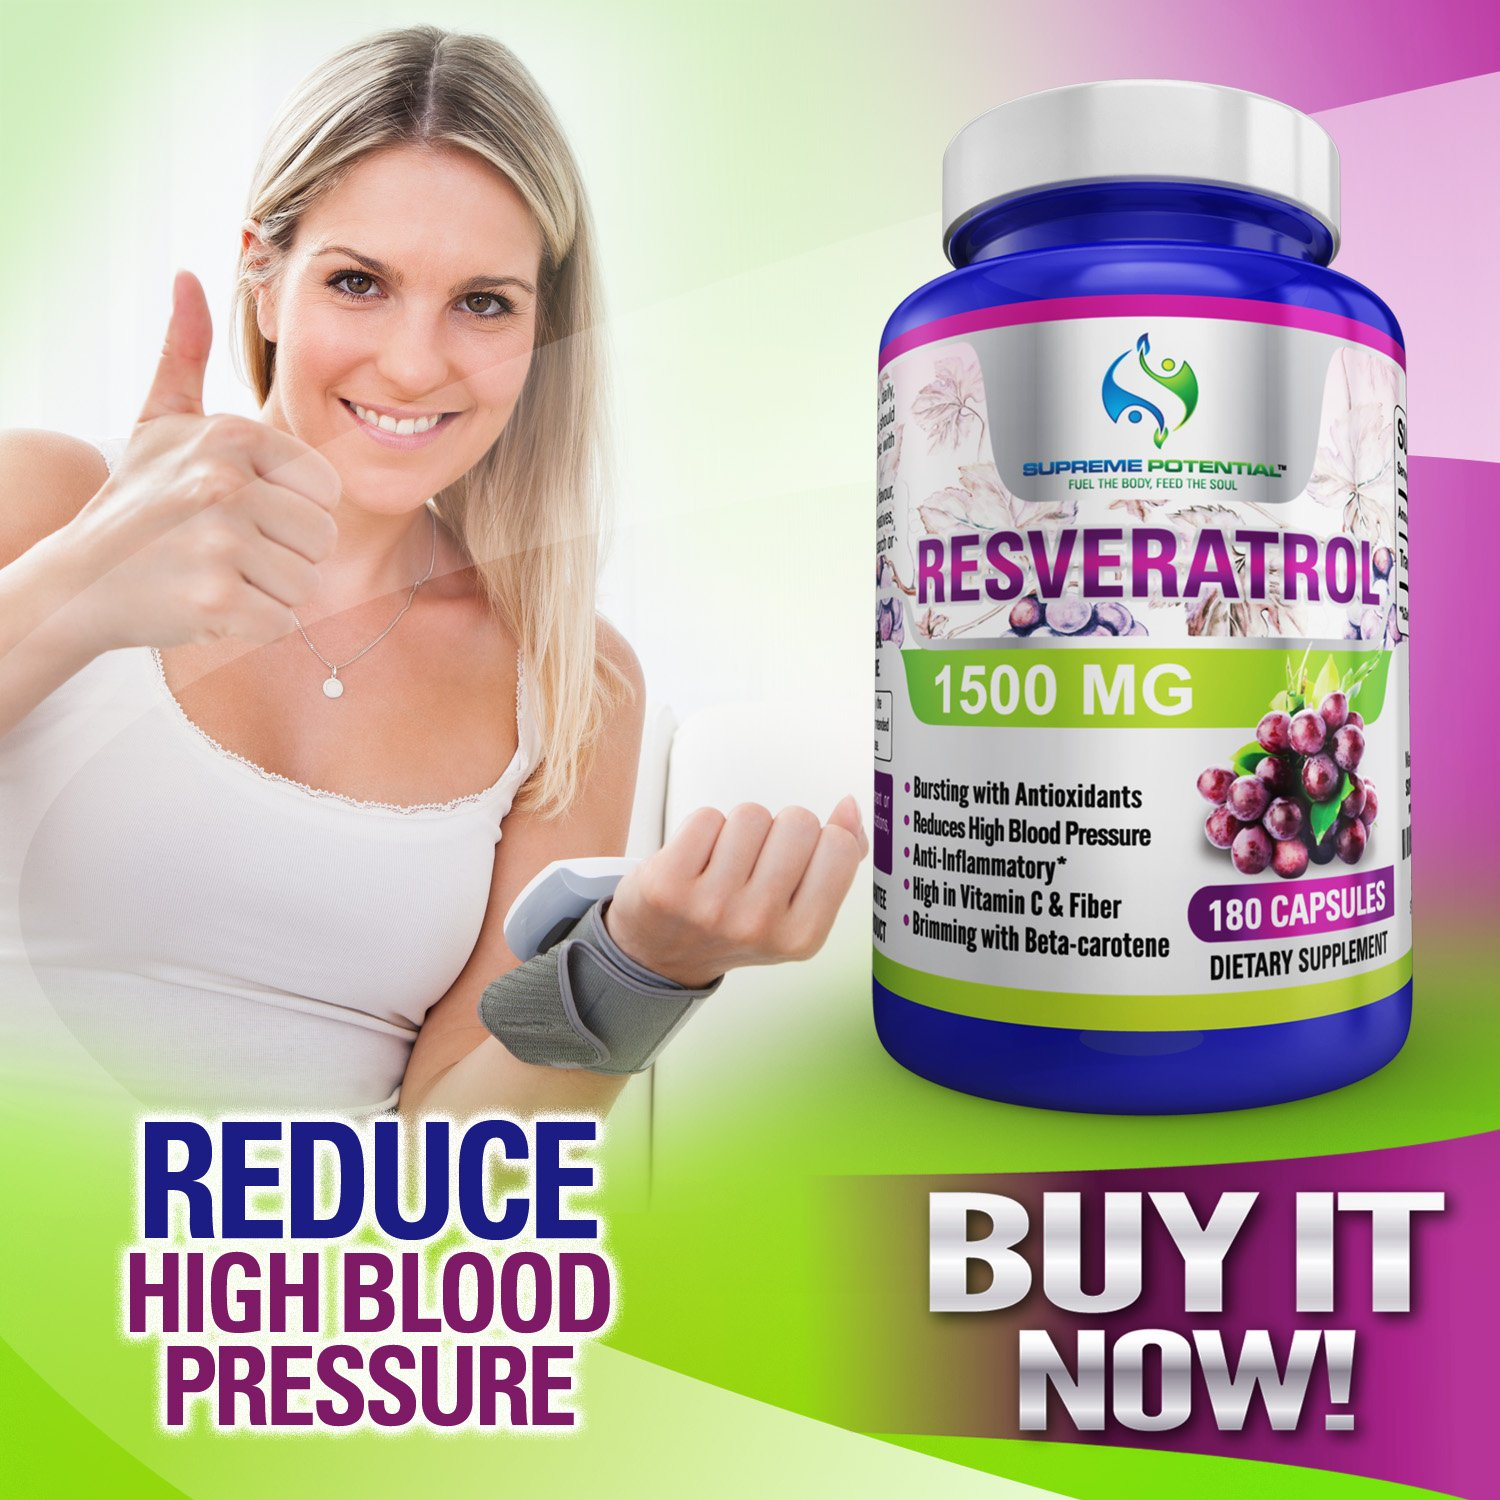 Supreme Potential 100% Pure Resveratrol Extract for Anti-Aging & Heart Health - 1500mg Maximum Strength (1) by Supreme Potential